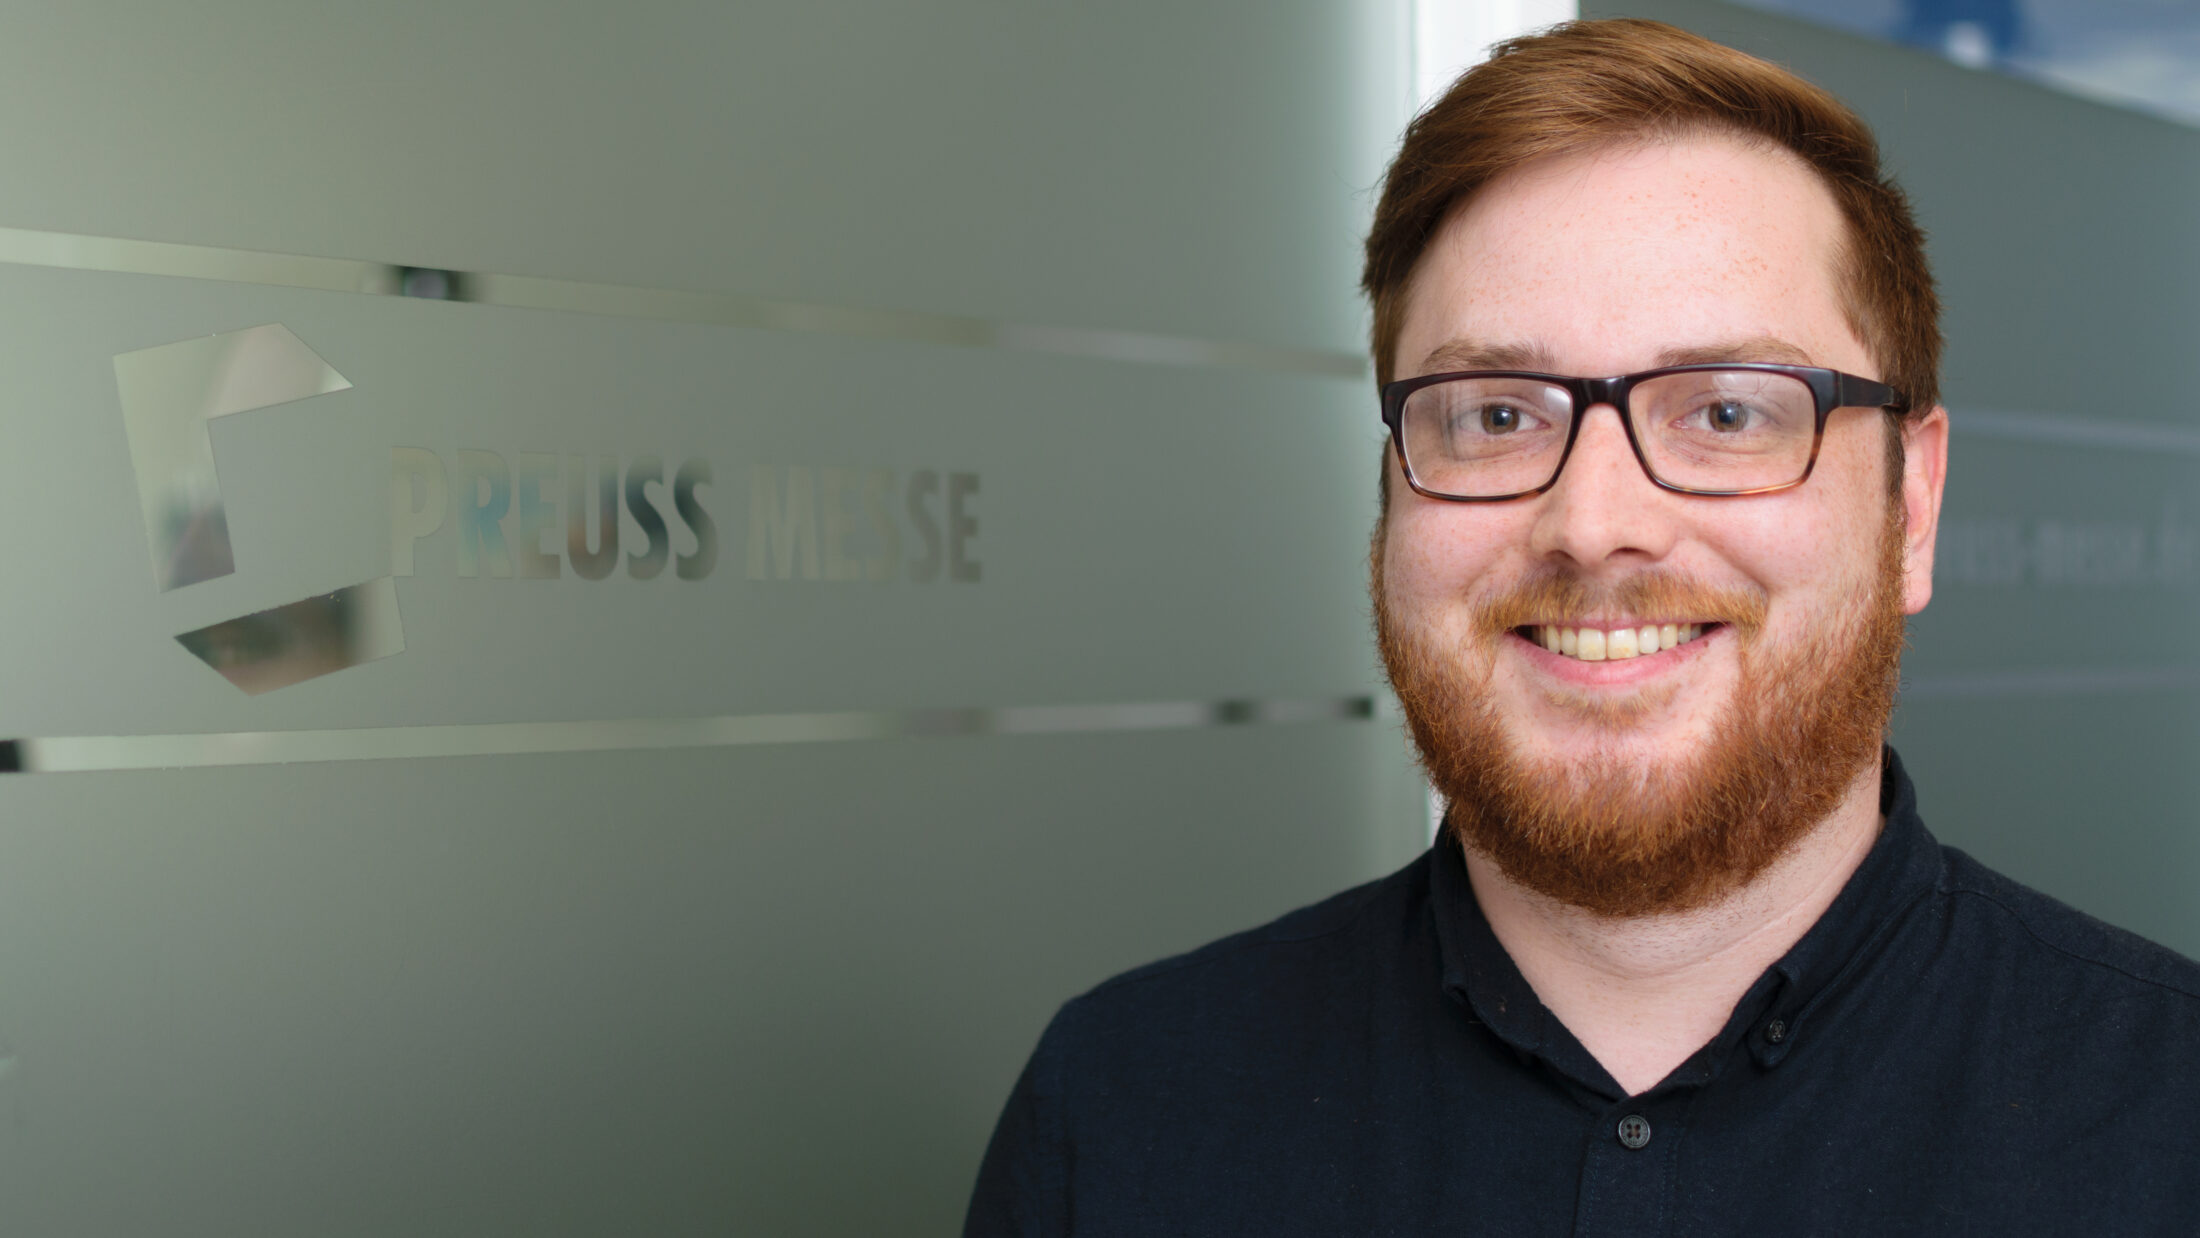 Daniel Meyer, Project Manager